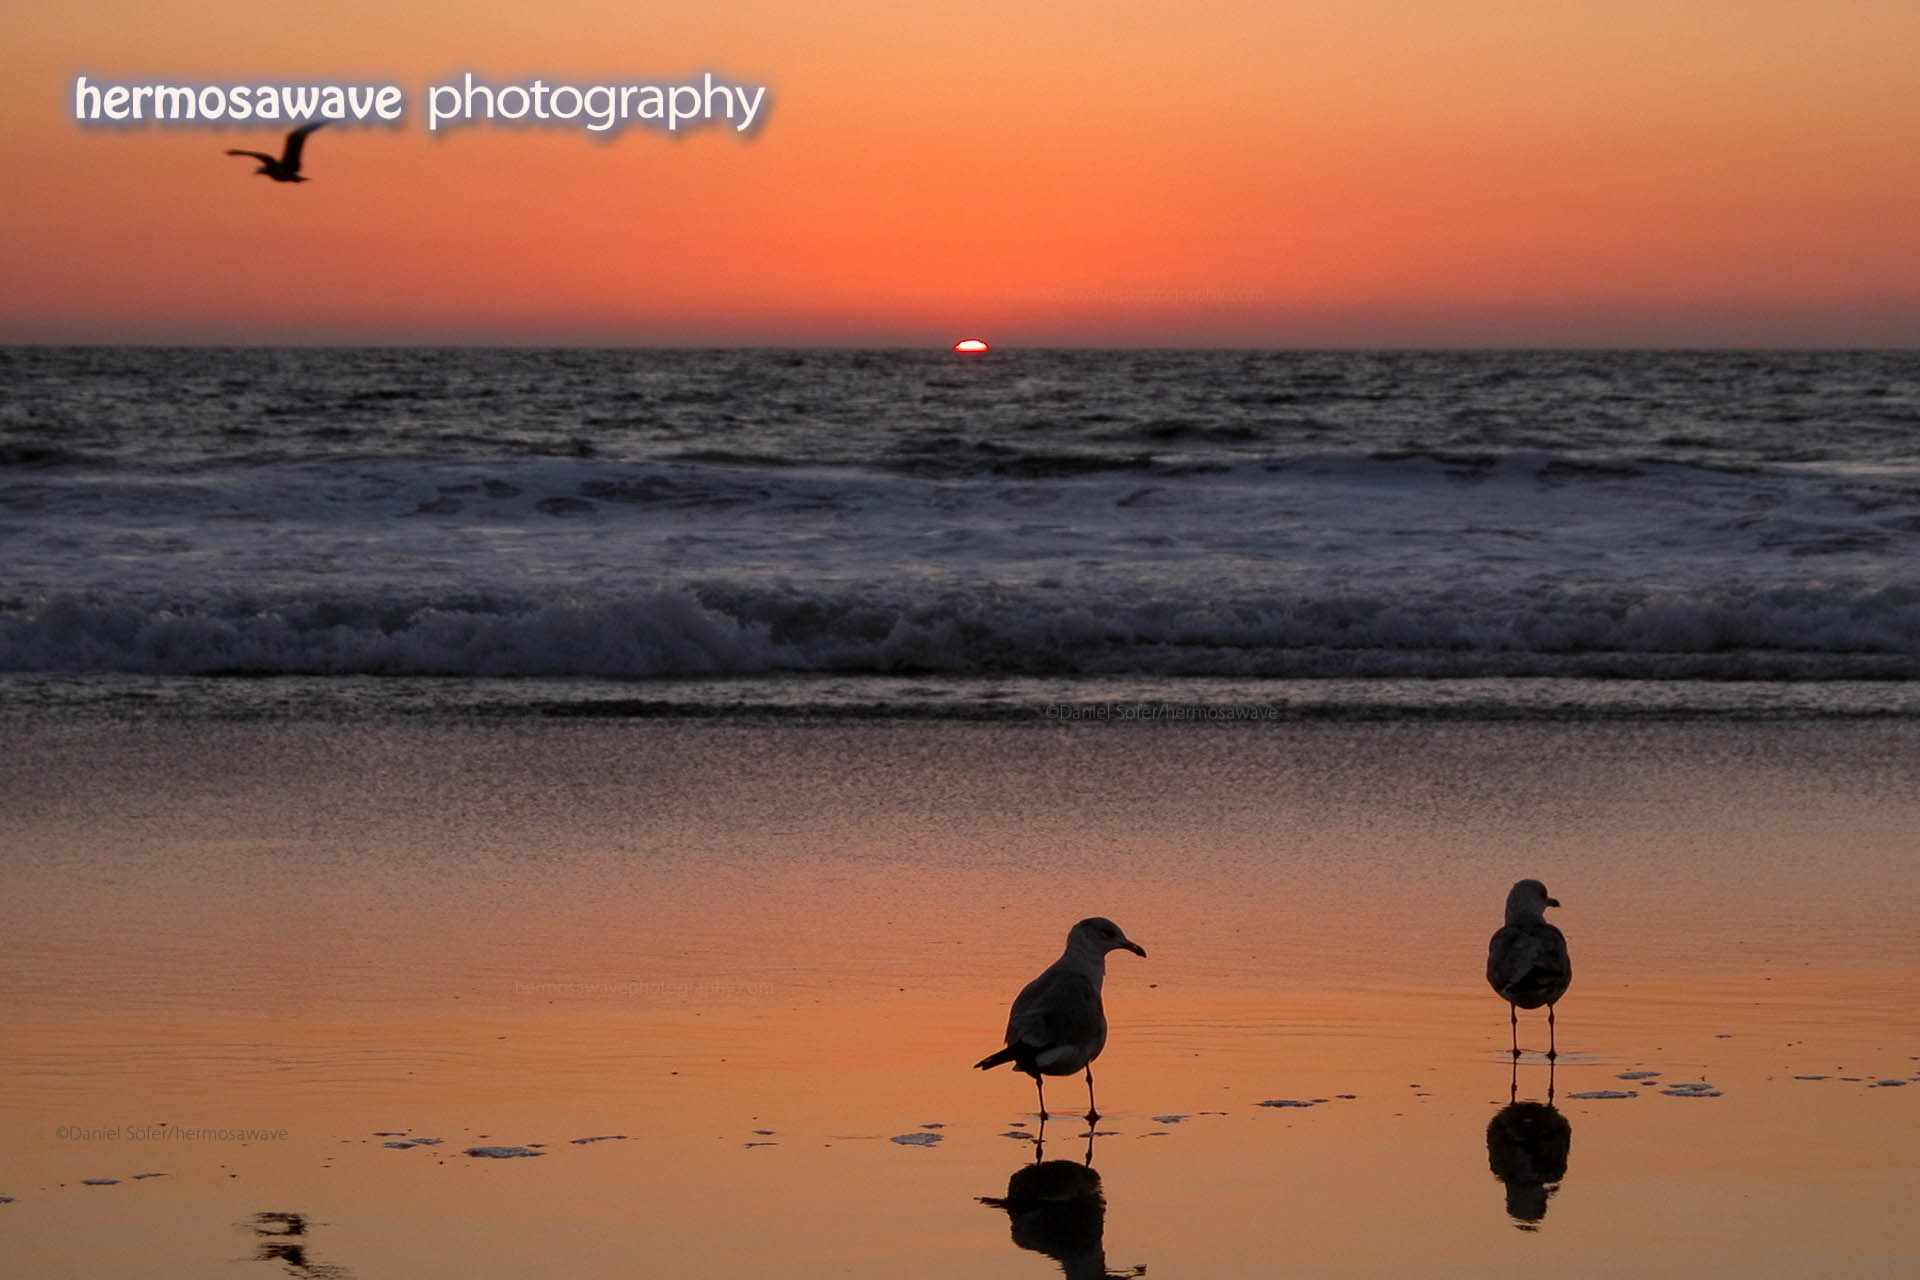 Sunset with Seagulls